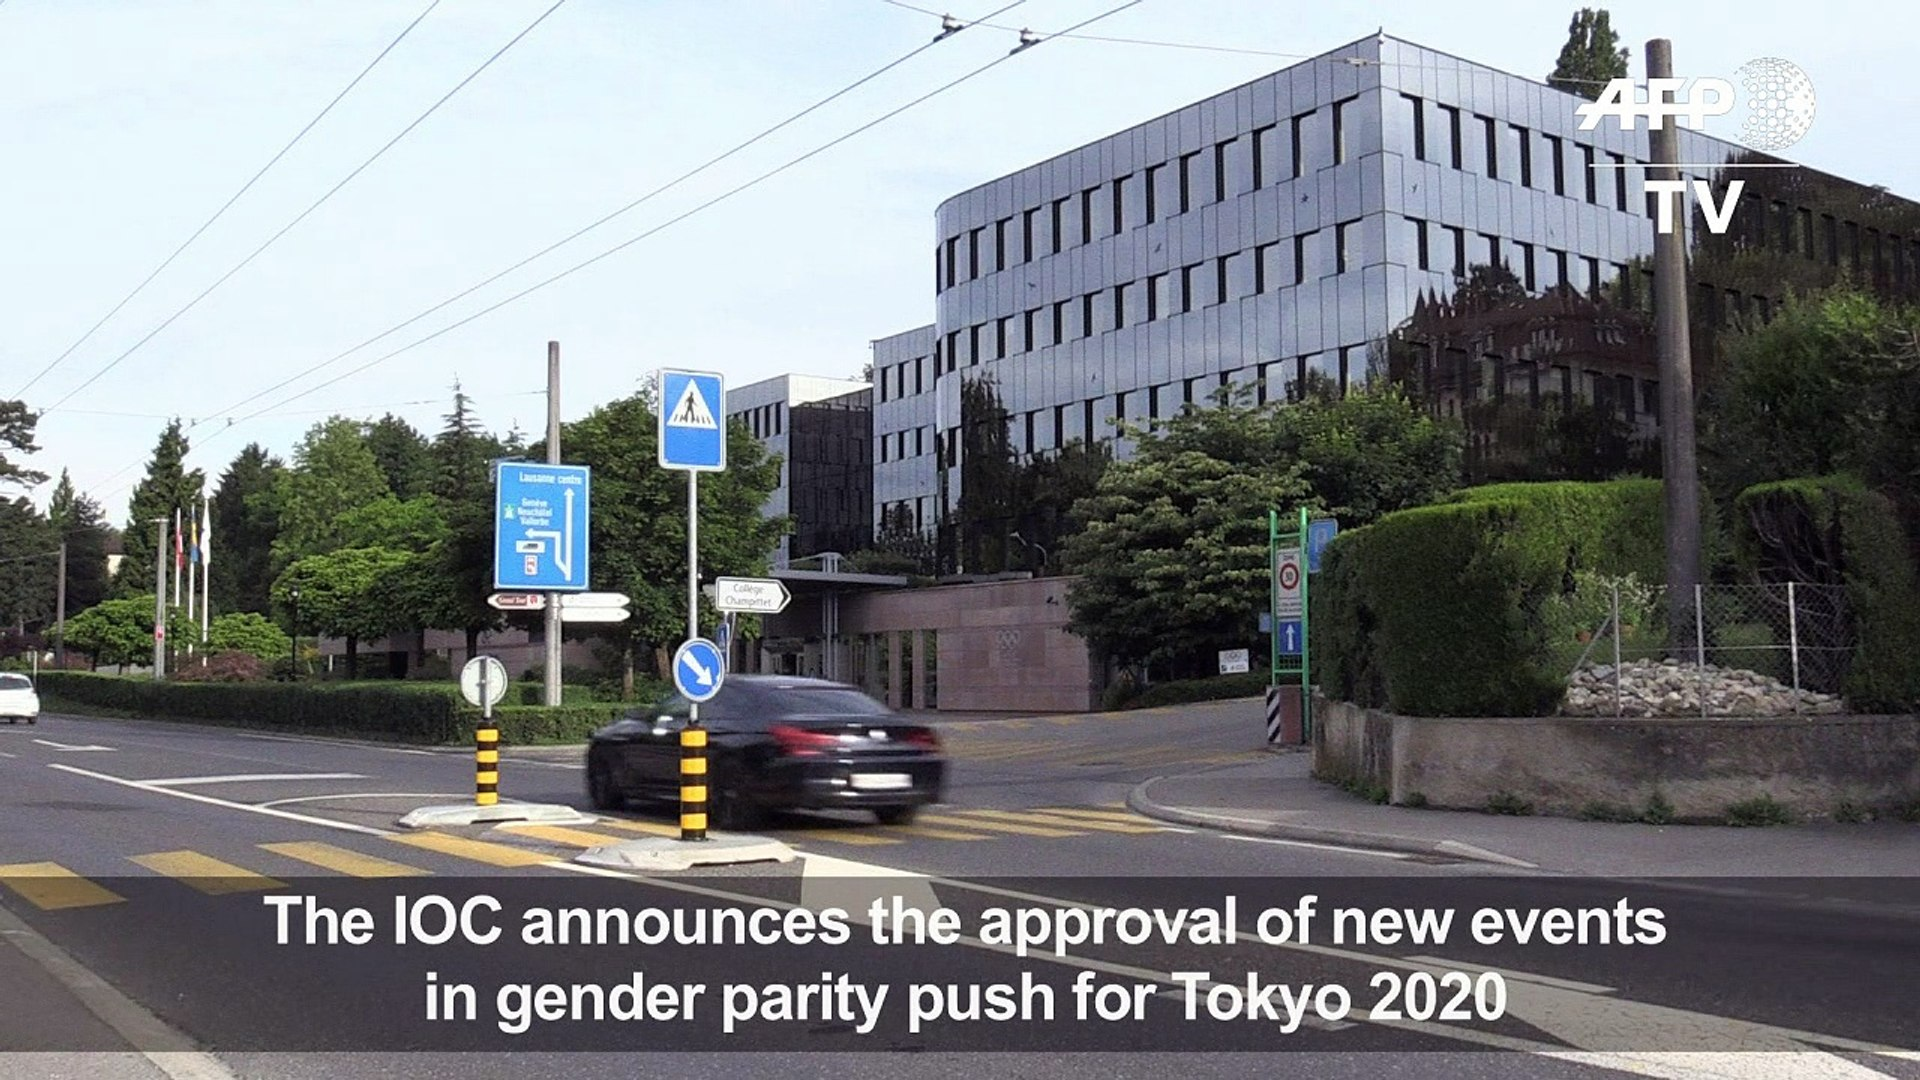 Olympics: IOC approves new events in gender parity push for 2020